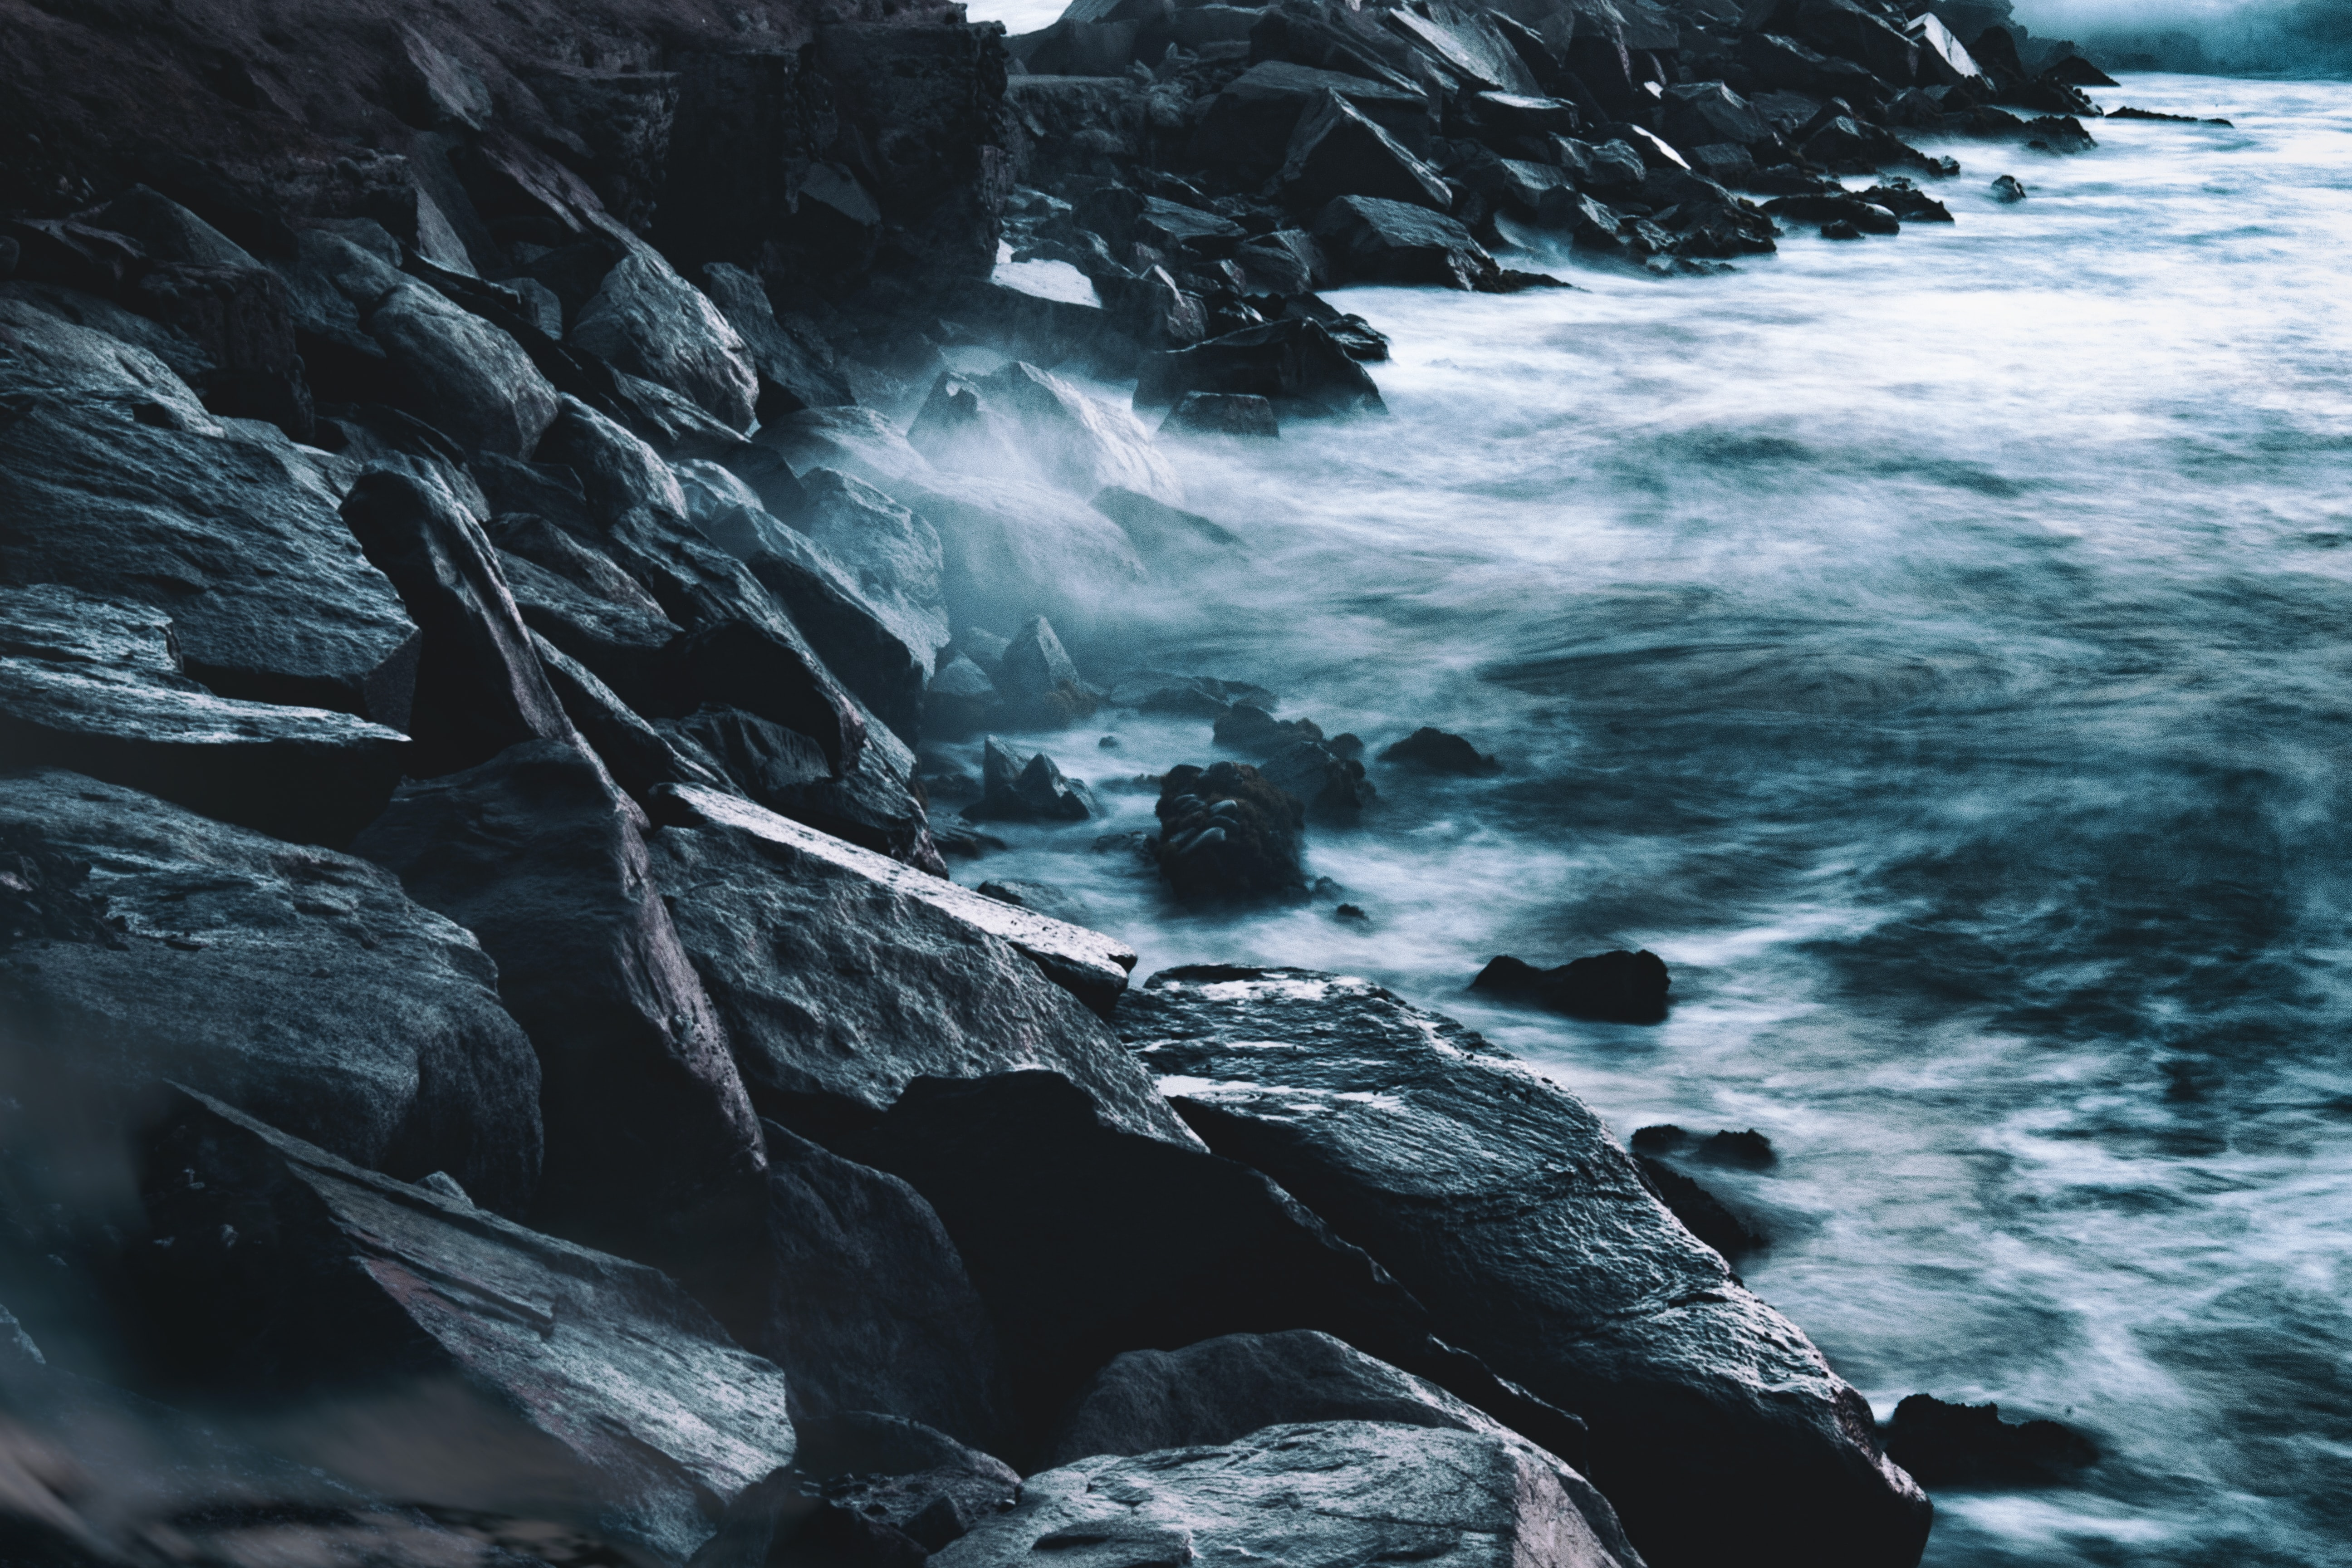 splashing waves on rocks